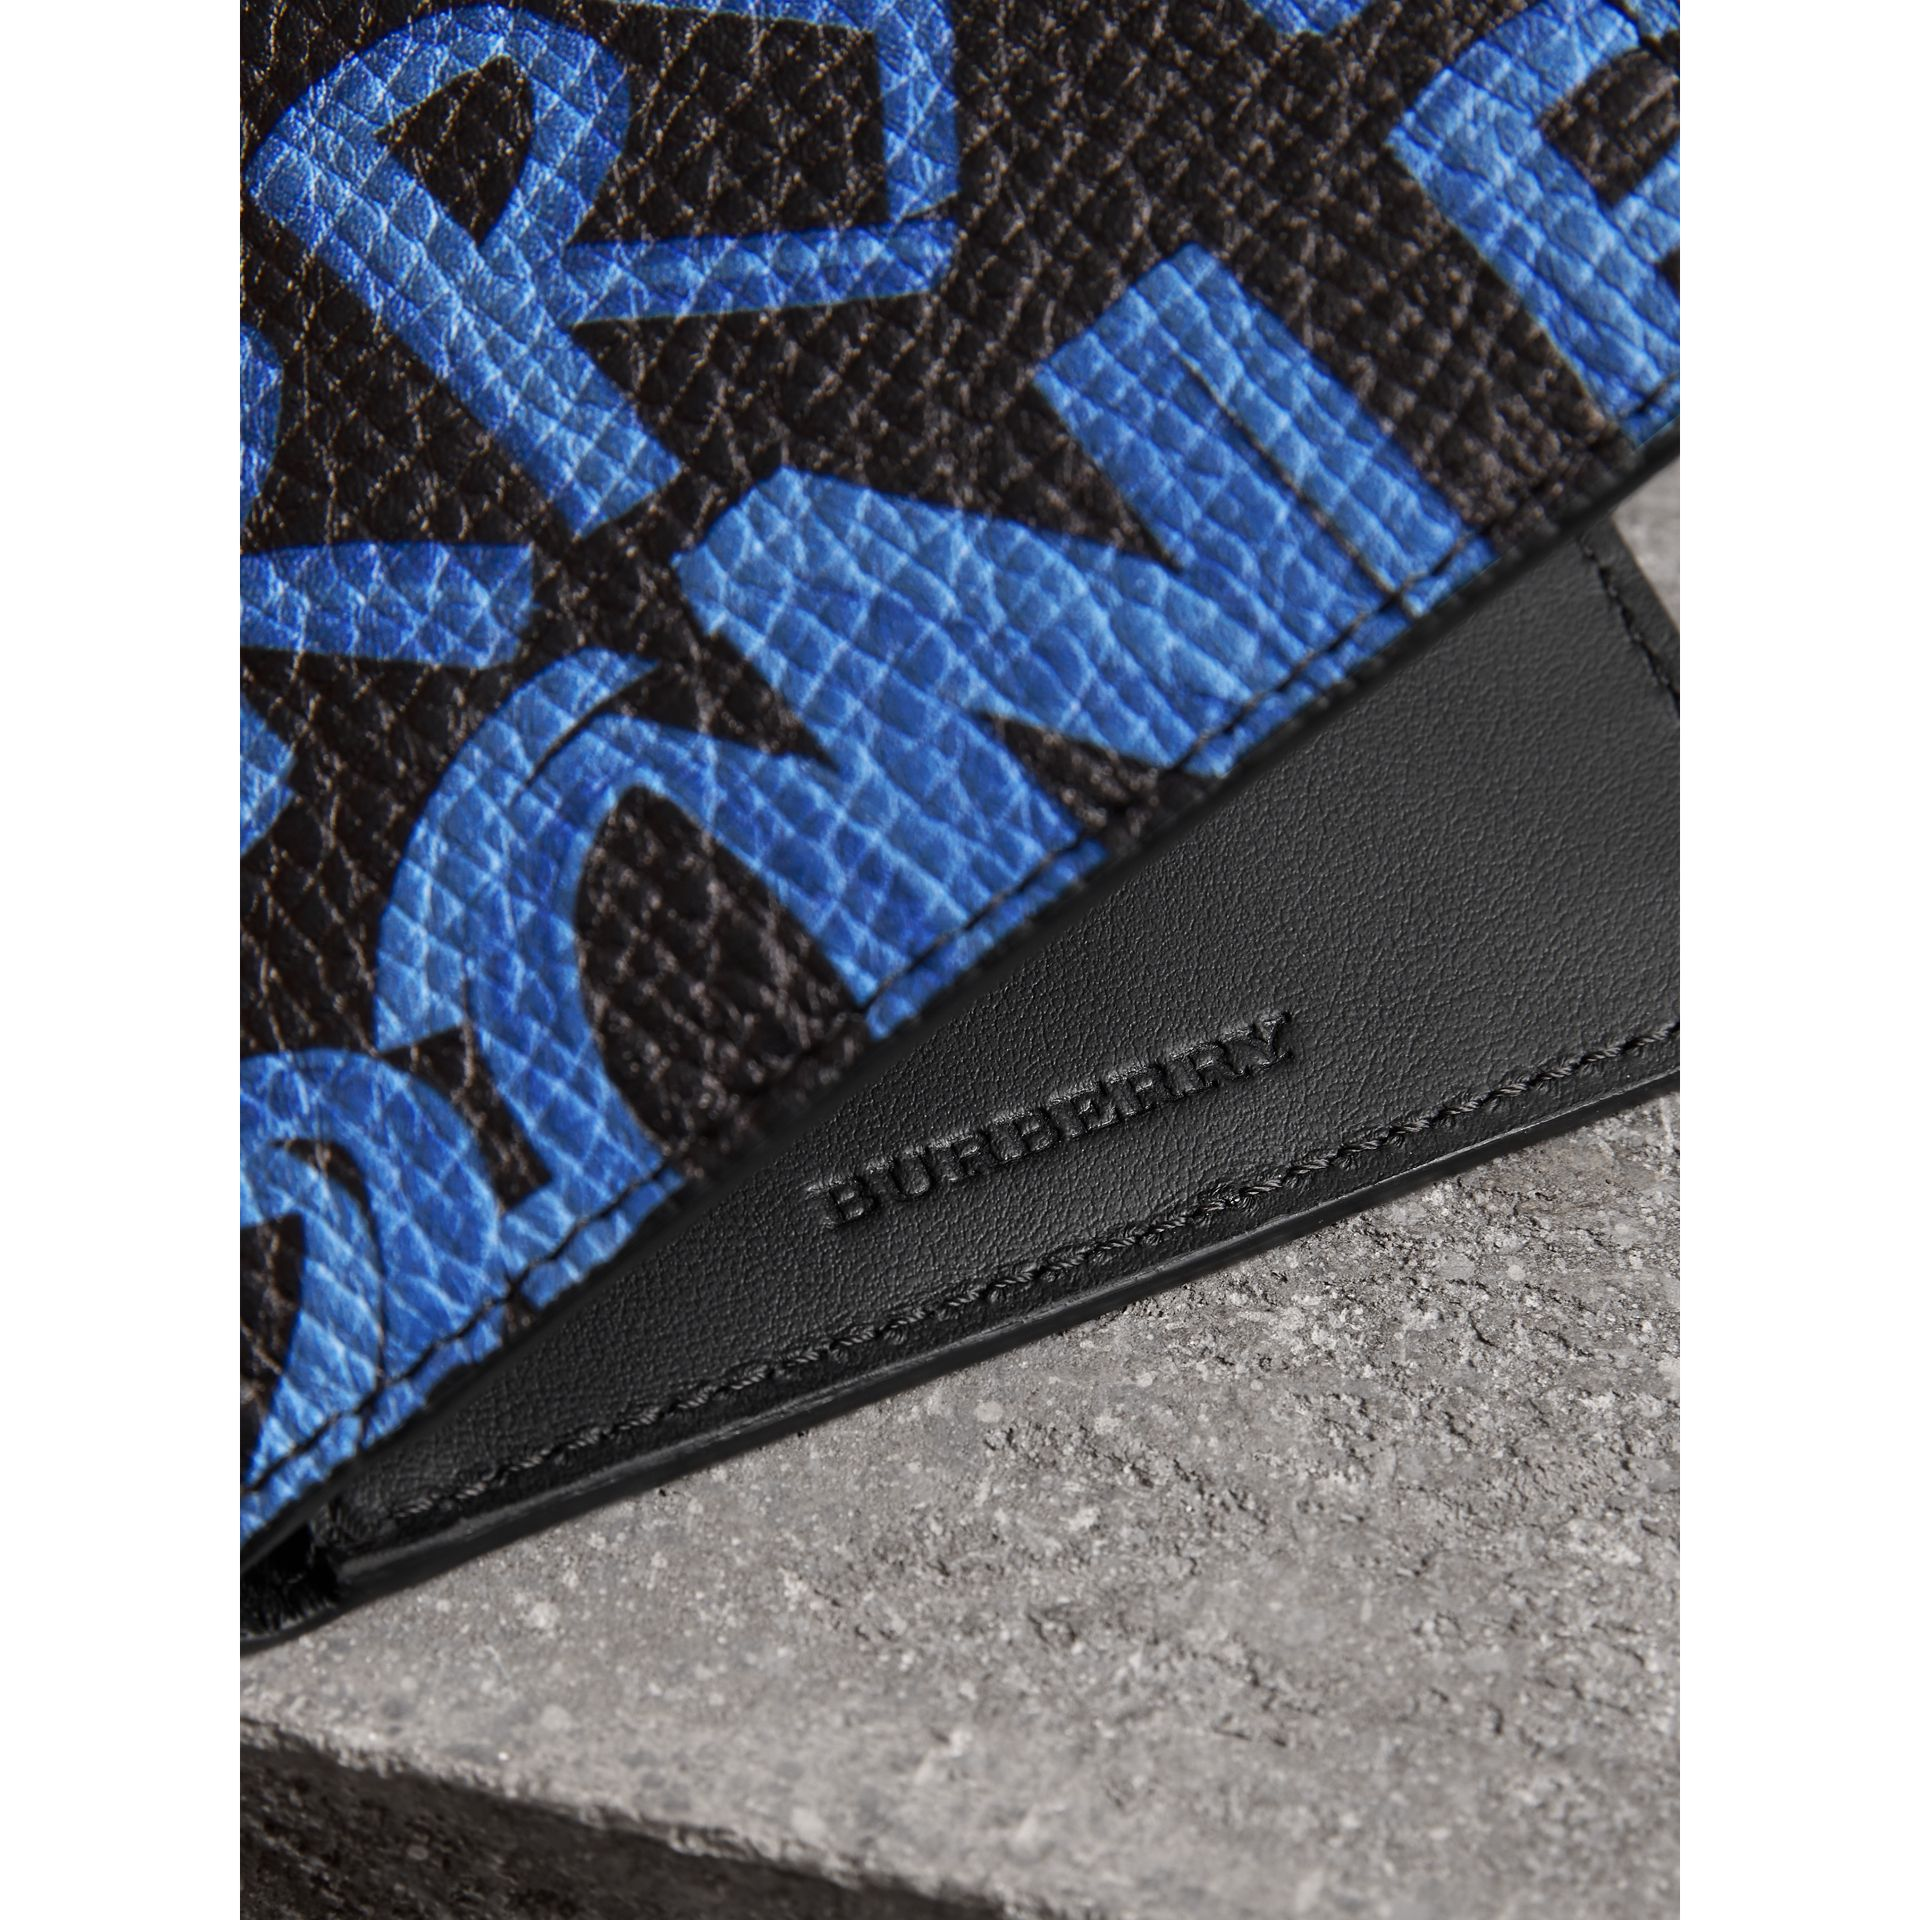 Graffiti Print Leather International Bifold Wallet in Blue/black - Men | Burberry United States - gallery image 1